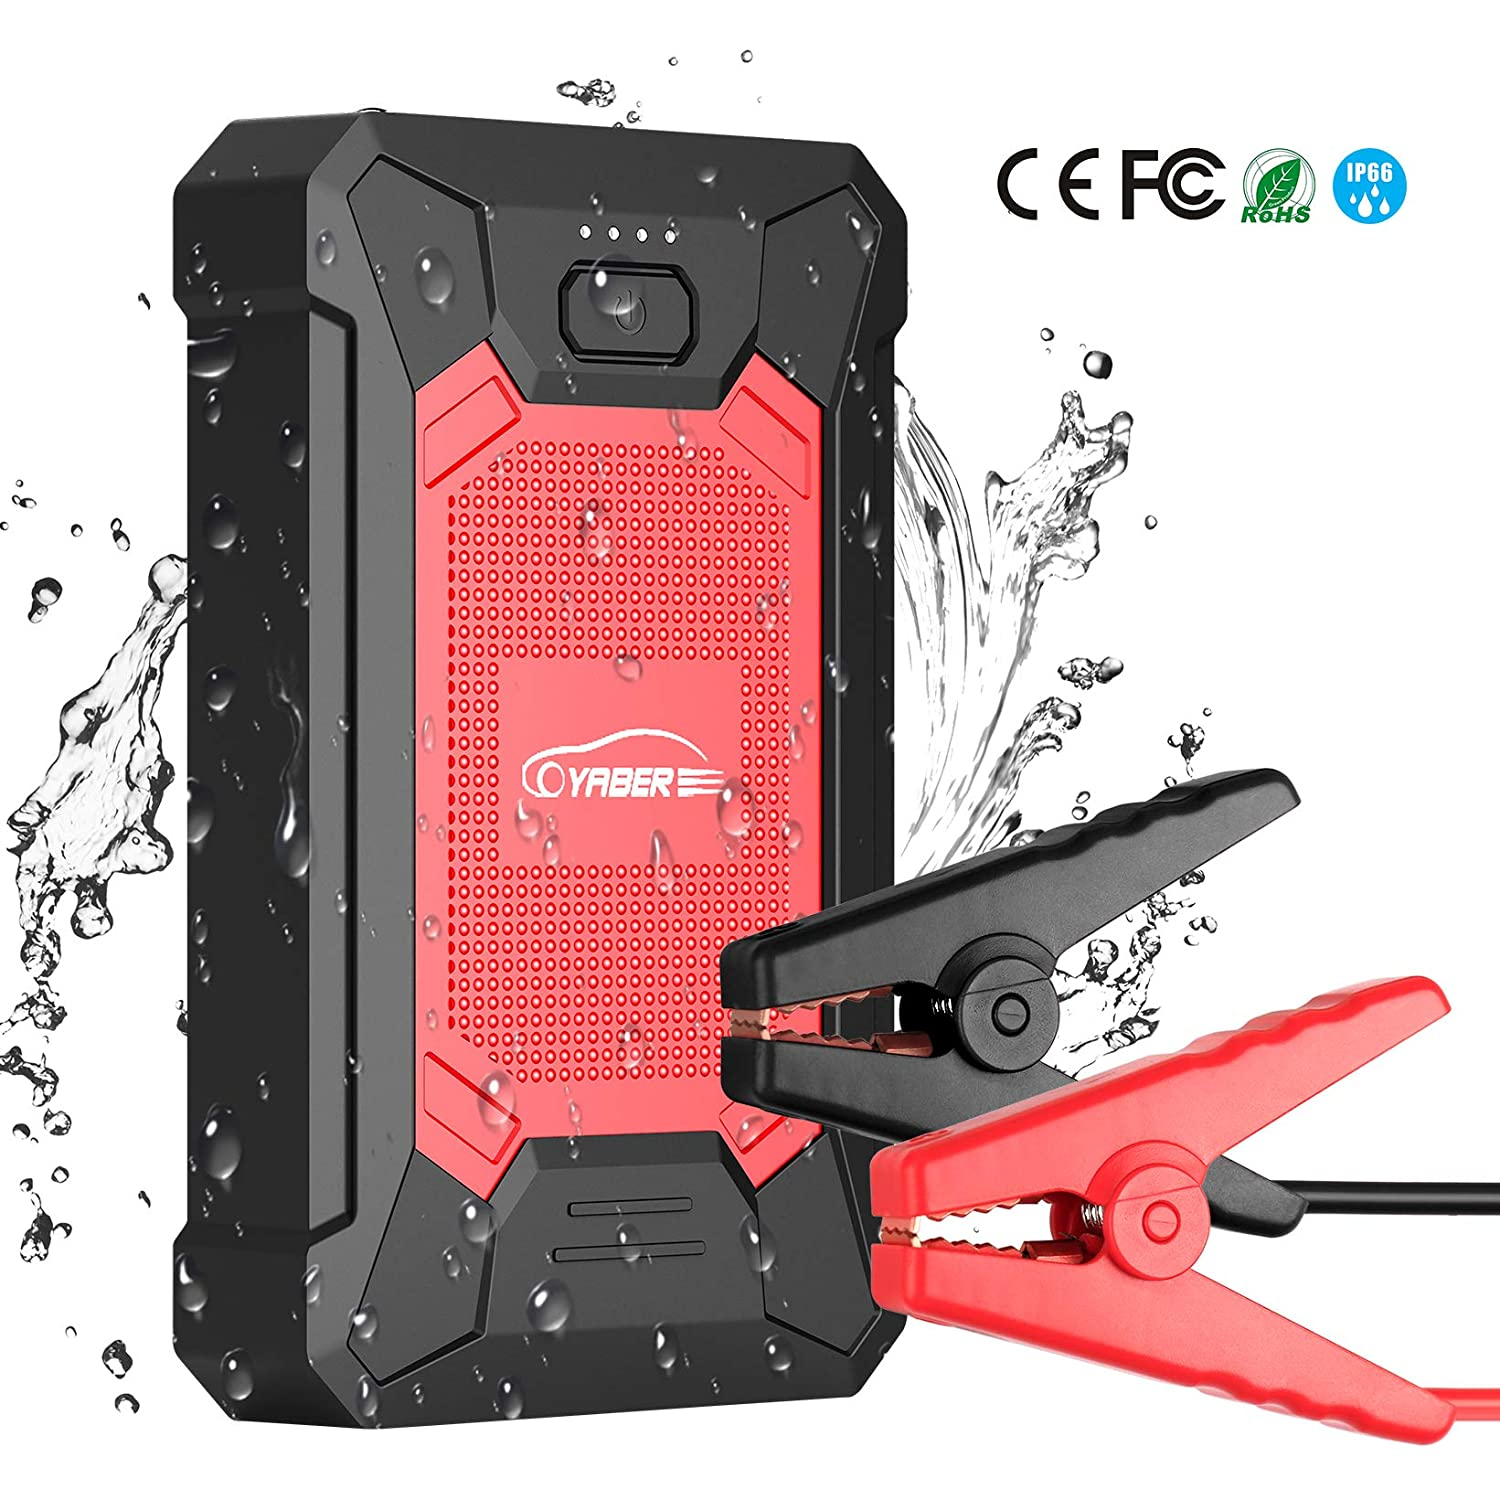 1200A Portable Waterproof Car Battery Jump Starter (up to 7.5L Gas, 6.0L Diesel Engine) 12V IP68 15000mAh Auto Battery Booster Power Pack with 3.0 Smart Charging Ports Built-in LED Flashlight YABER